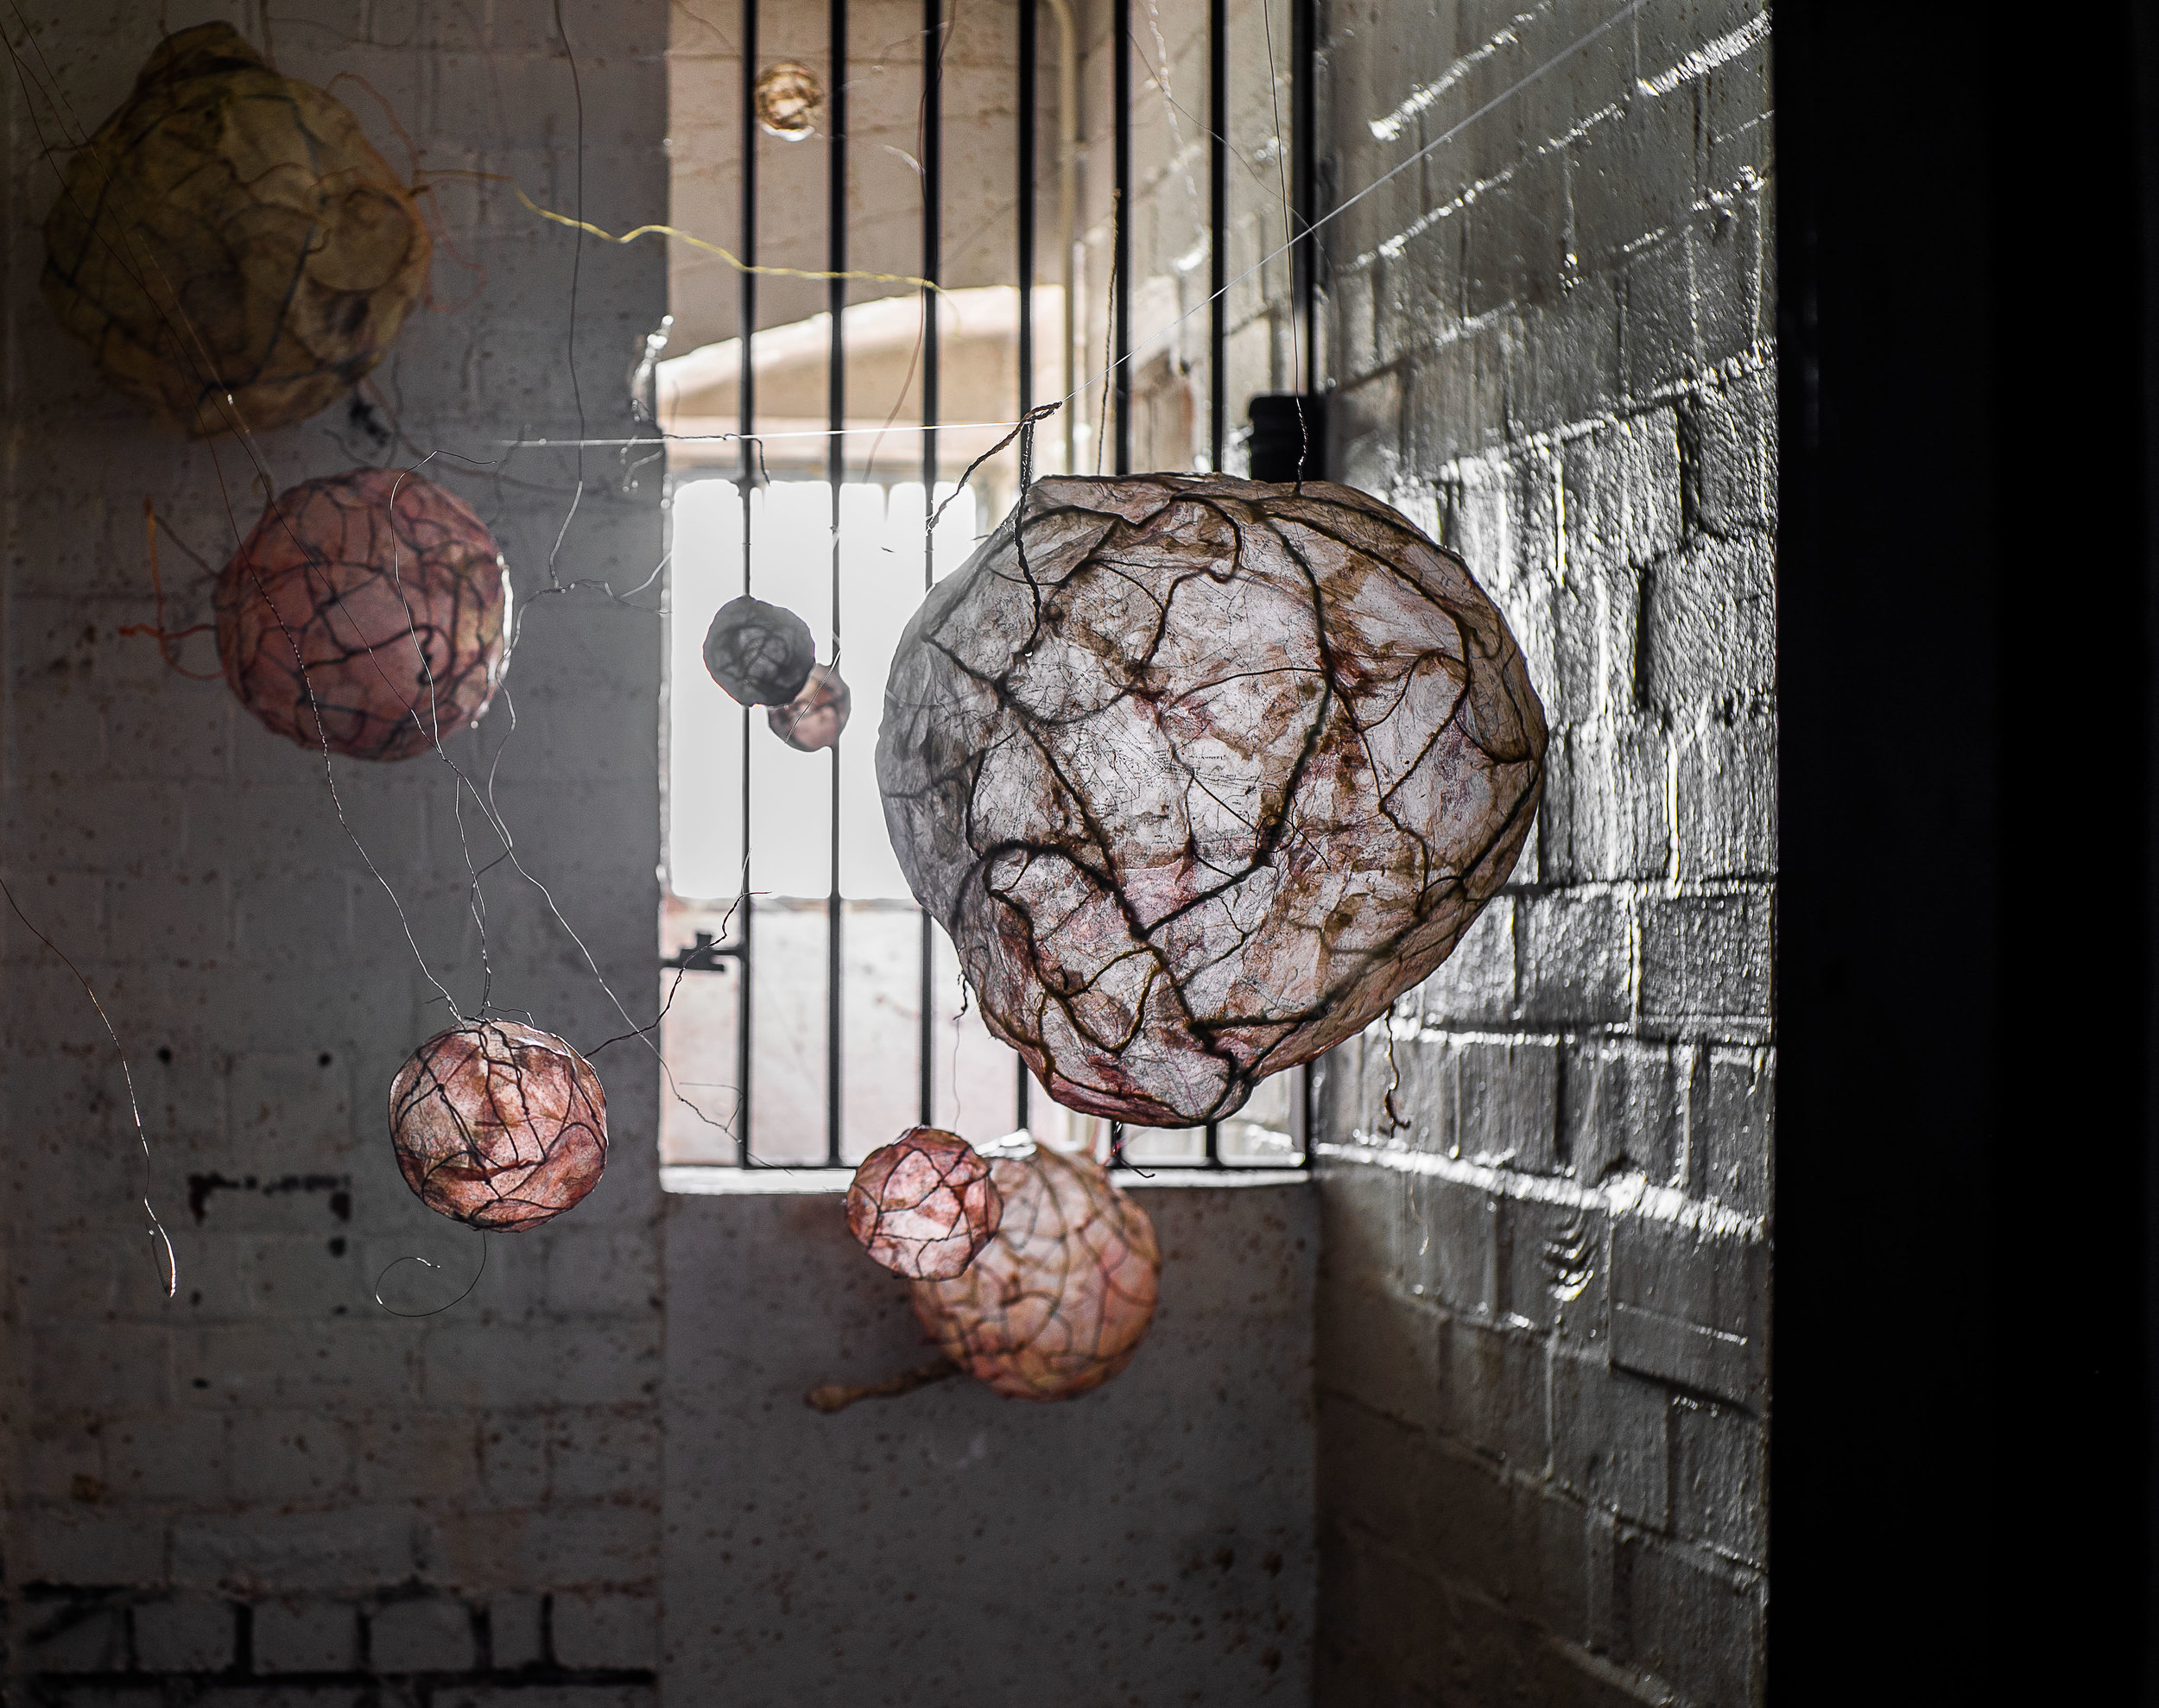 Cellular/Planetary structures - installed in the cell loo  Photos by Tchad Findlay